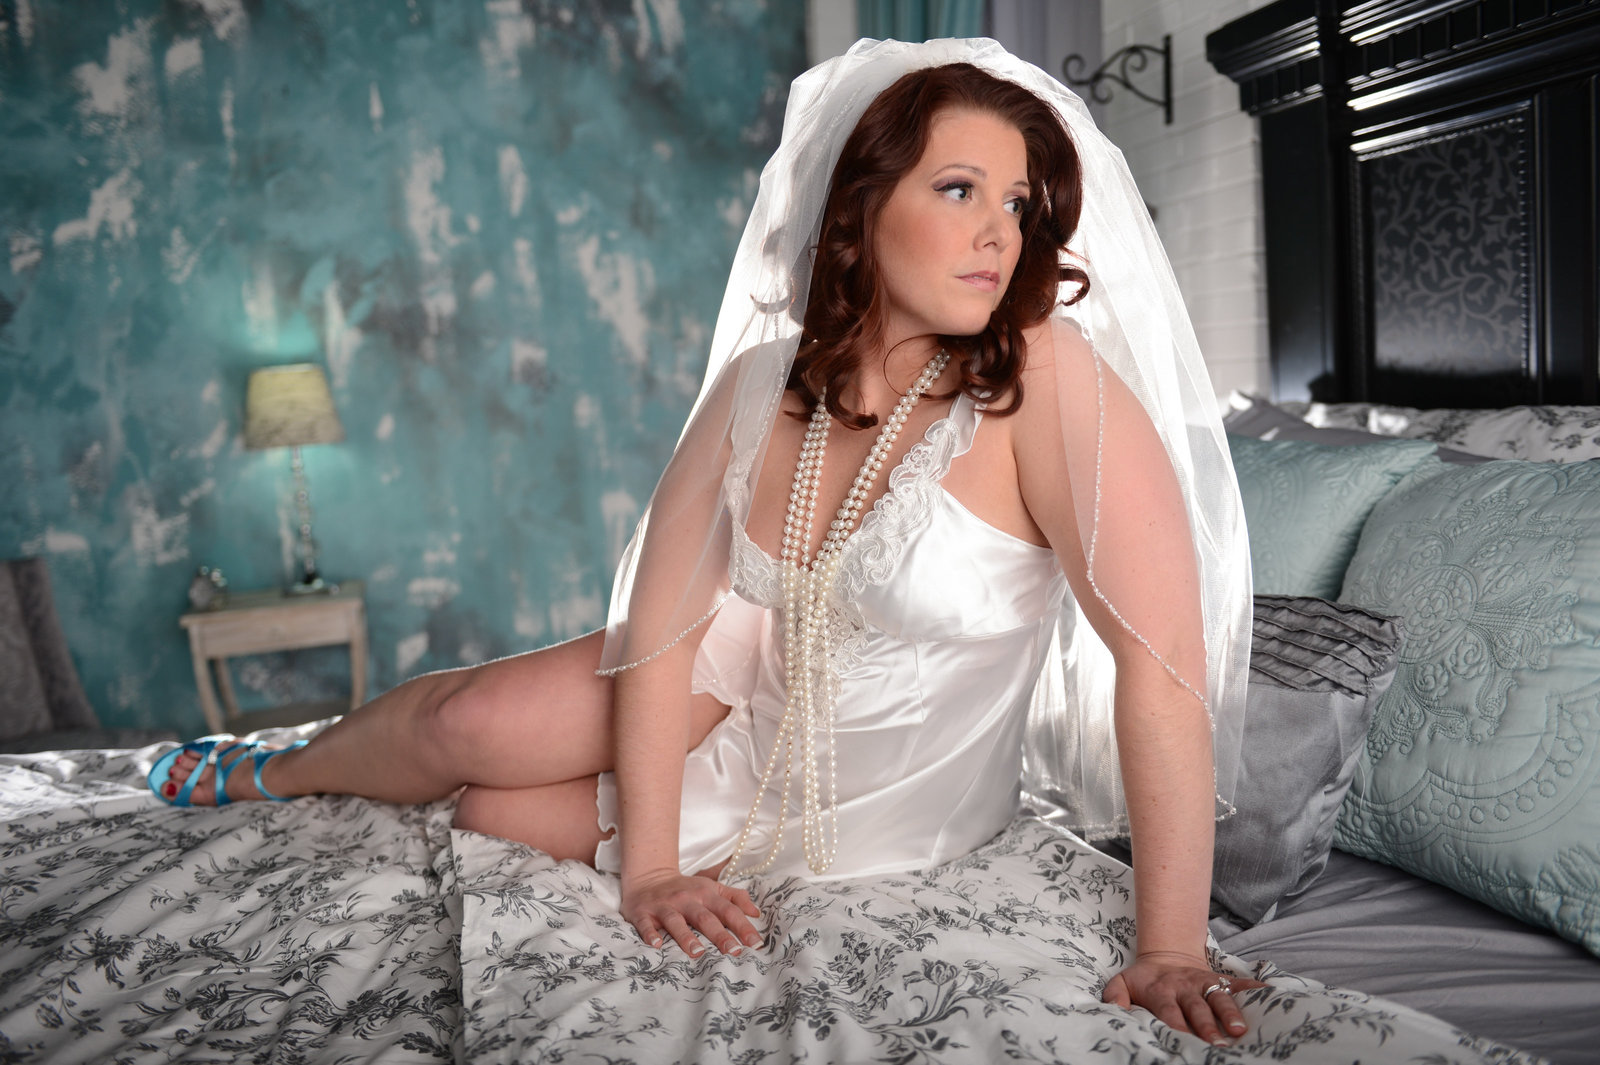 Boudoir Louisville - Boudoir Photography Studio - Lexington, Cincinnati & Indianapolis-162